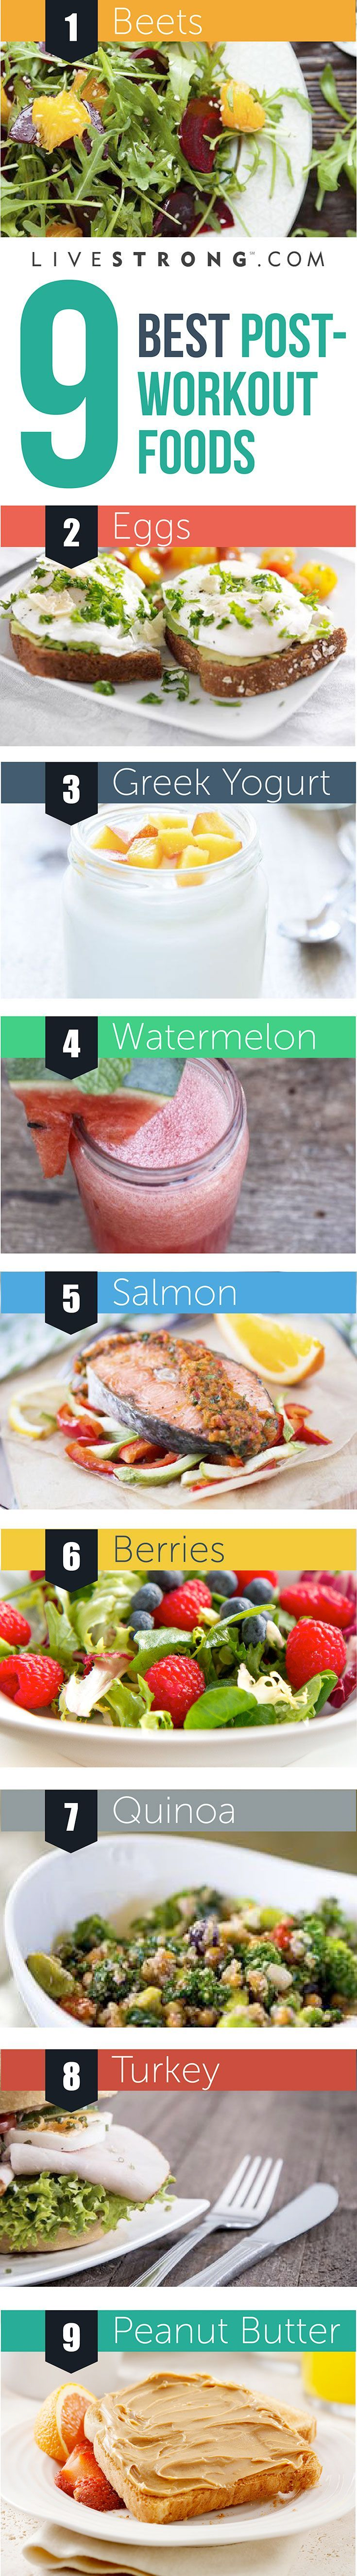 Refuel with these 9 post workout foods